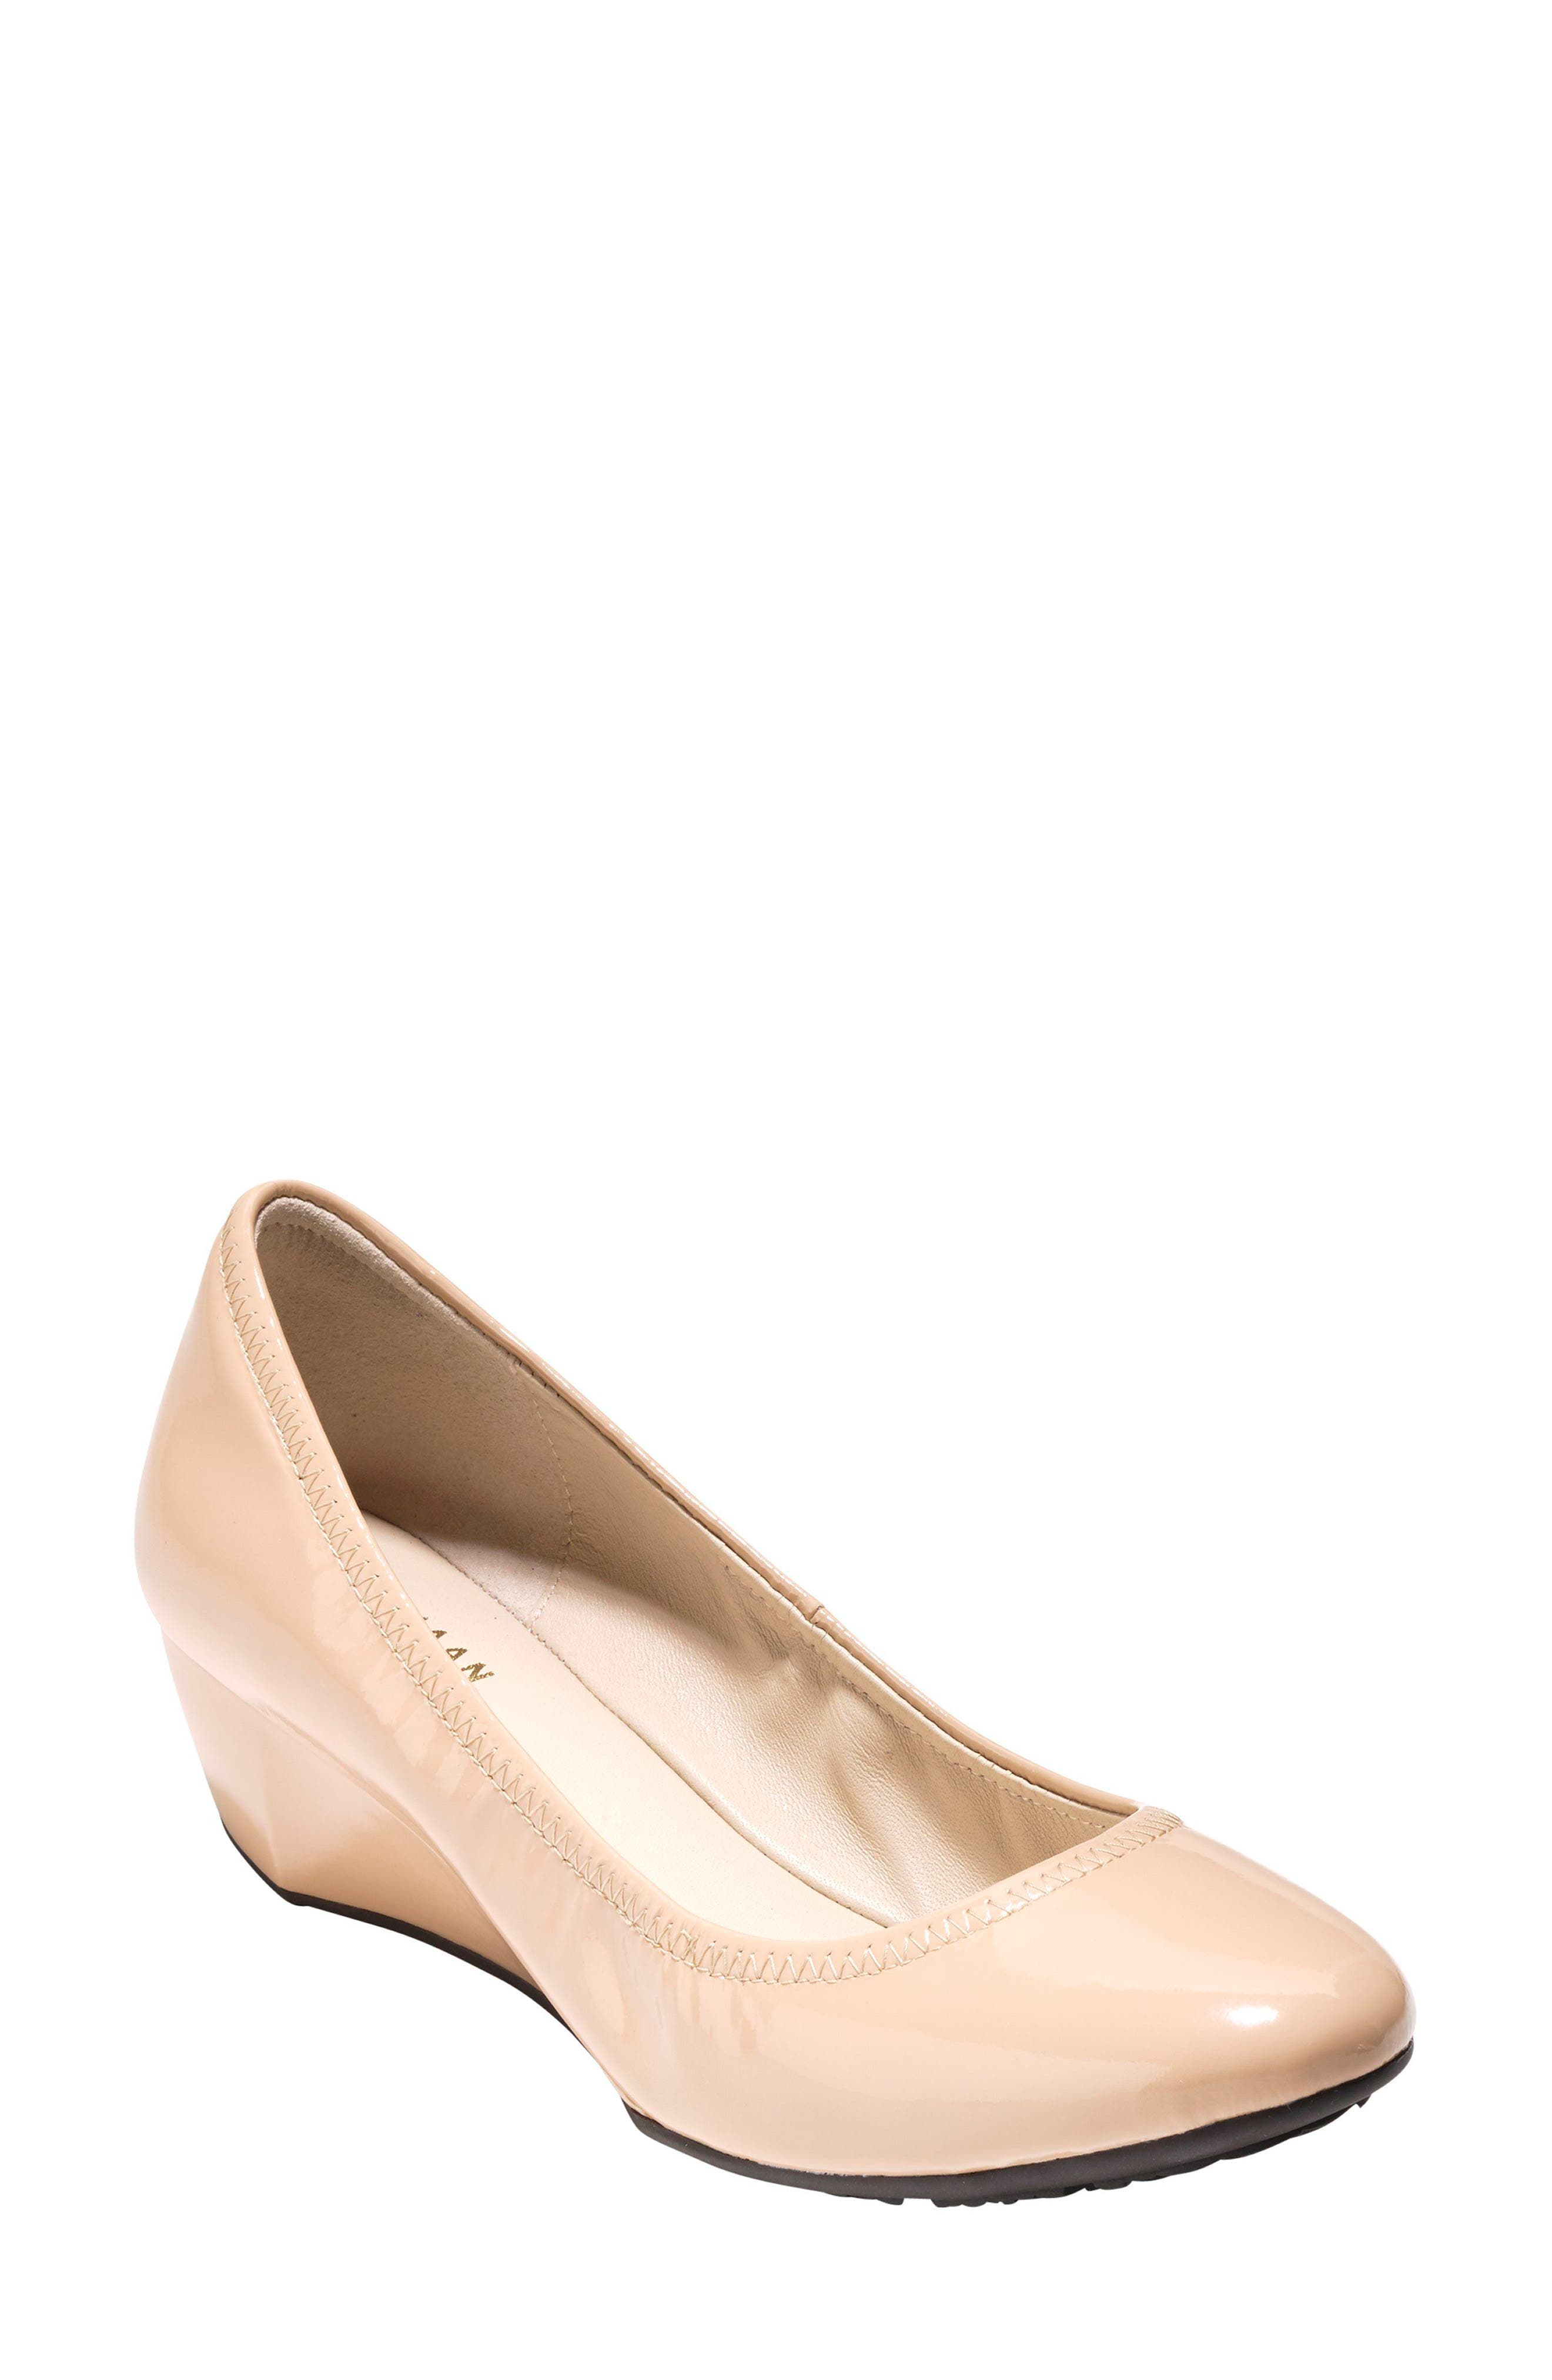 Sadie Grand Patent Wedge Pump, Nude in Nude Patent Leather